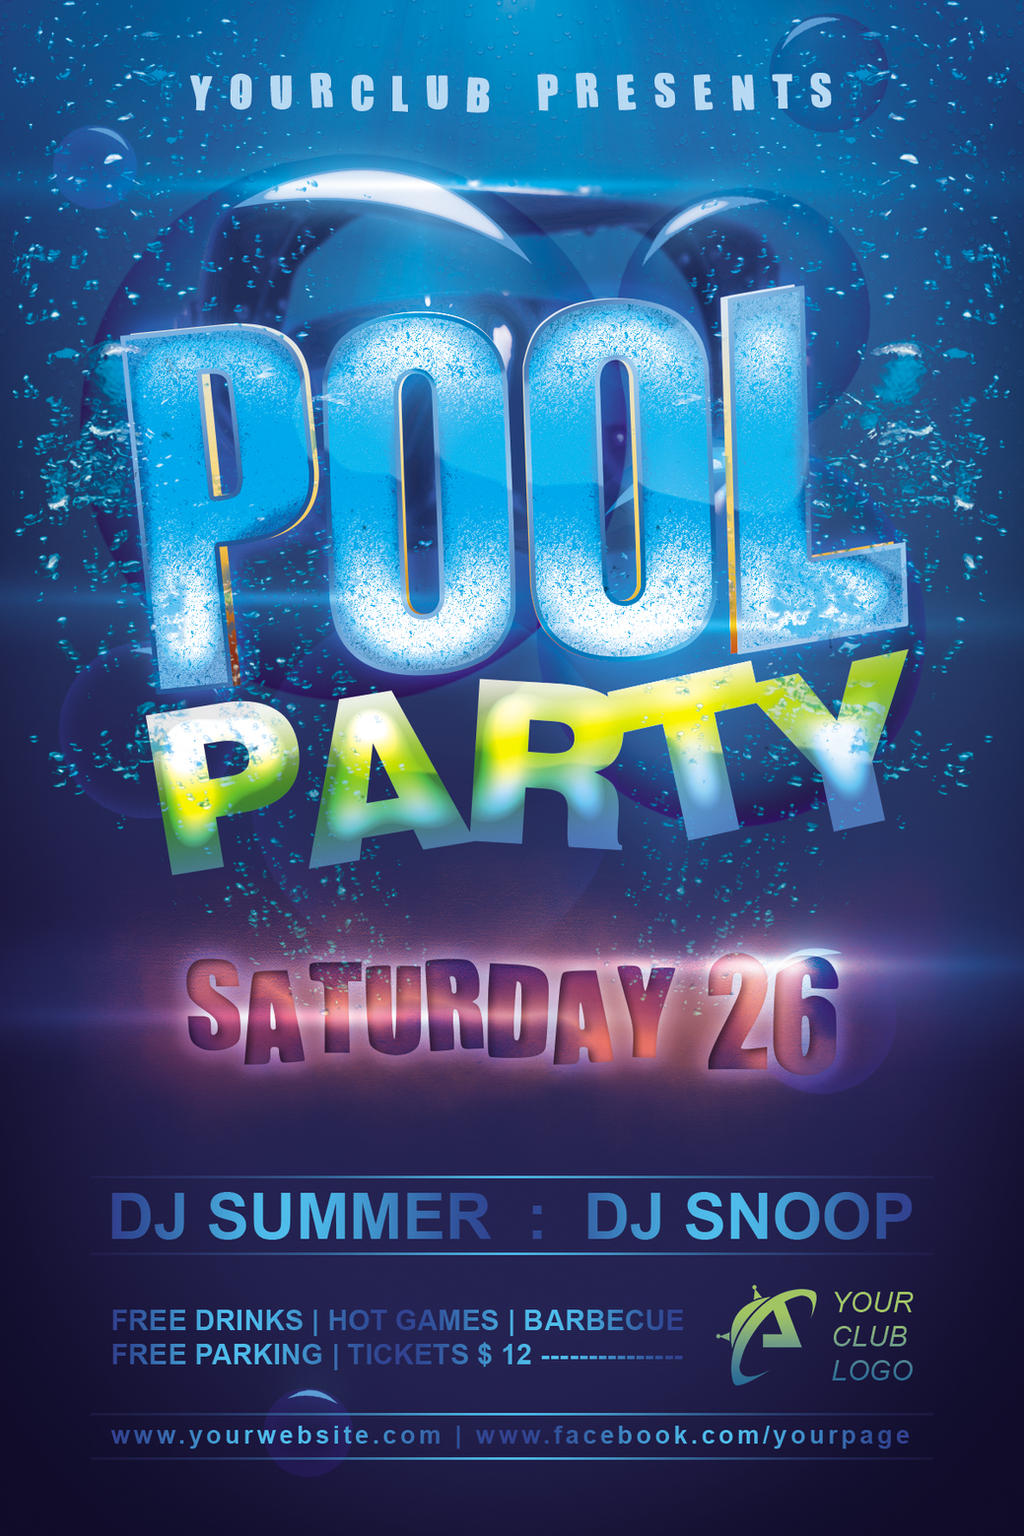 Pool Party Flyer by Dilanr on DeviantArt